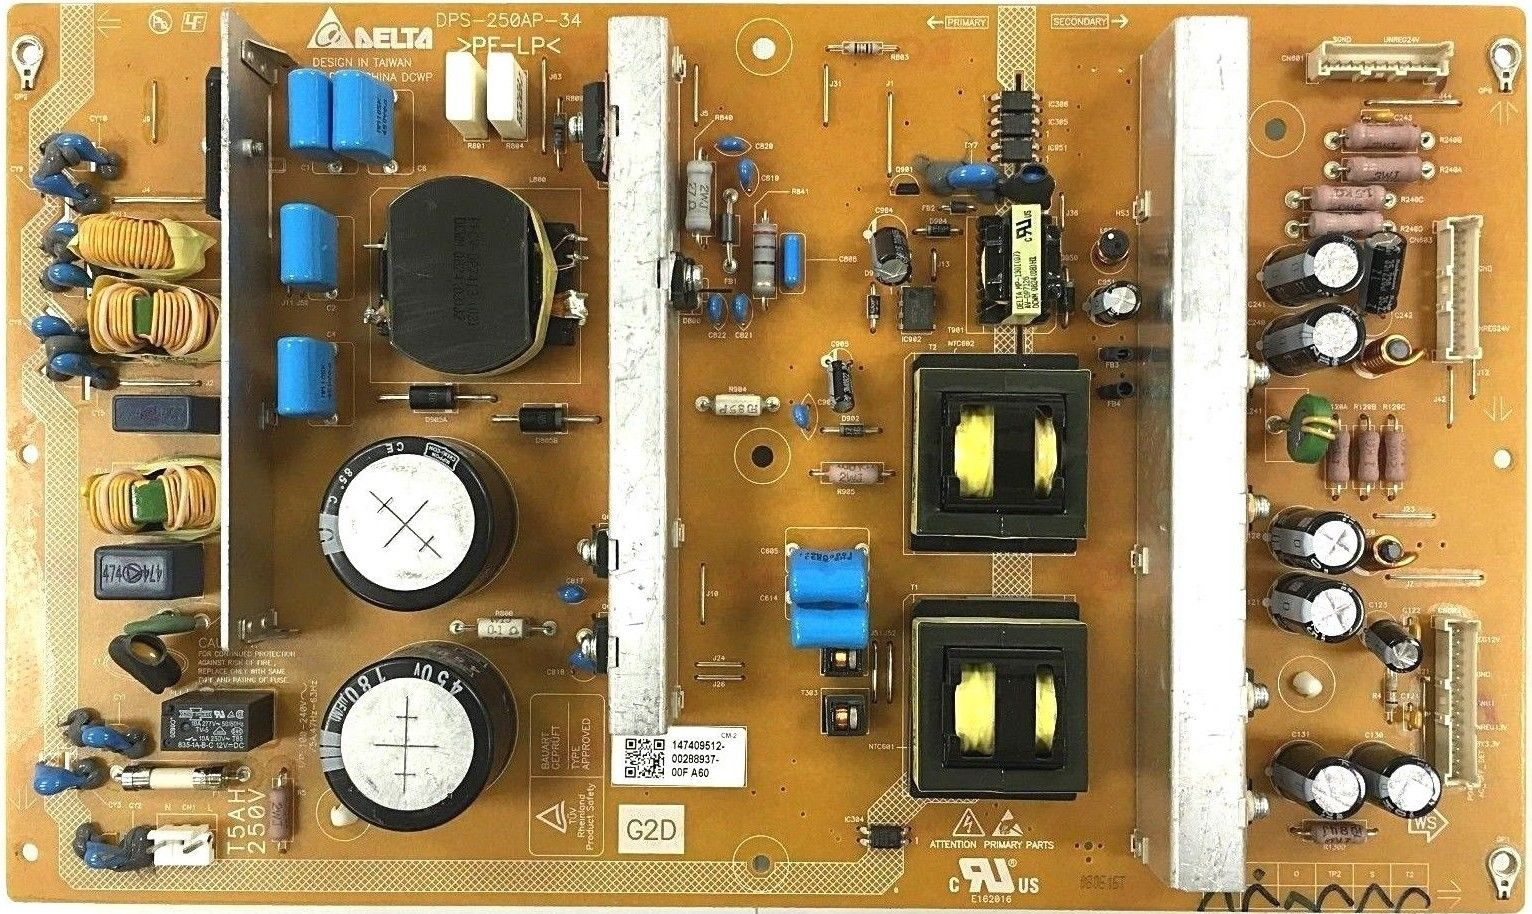 LCD – Page 2 – Digital Electronic Parts Power Supply Schematic Diagram Dps Ap on